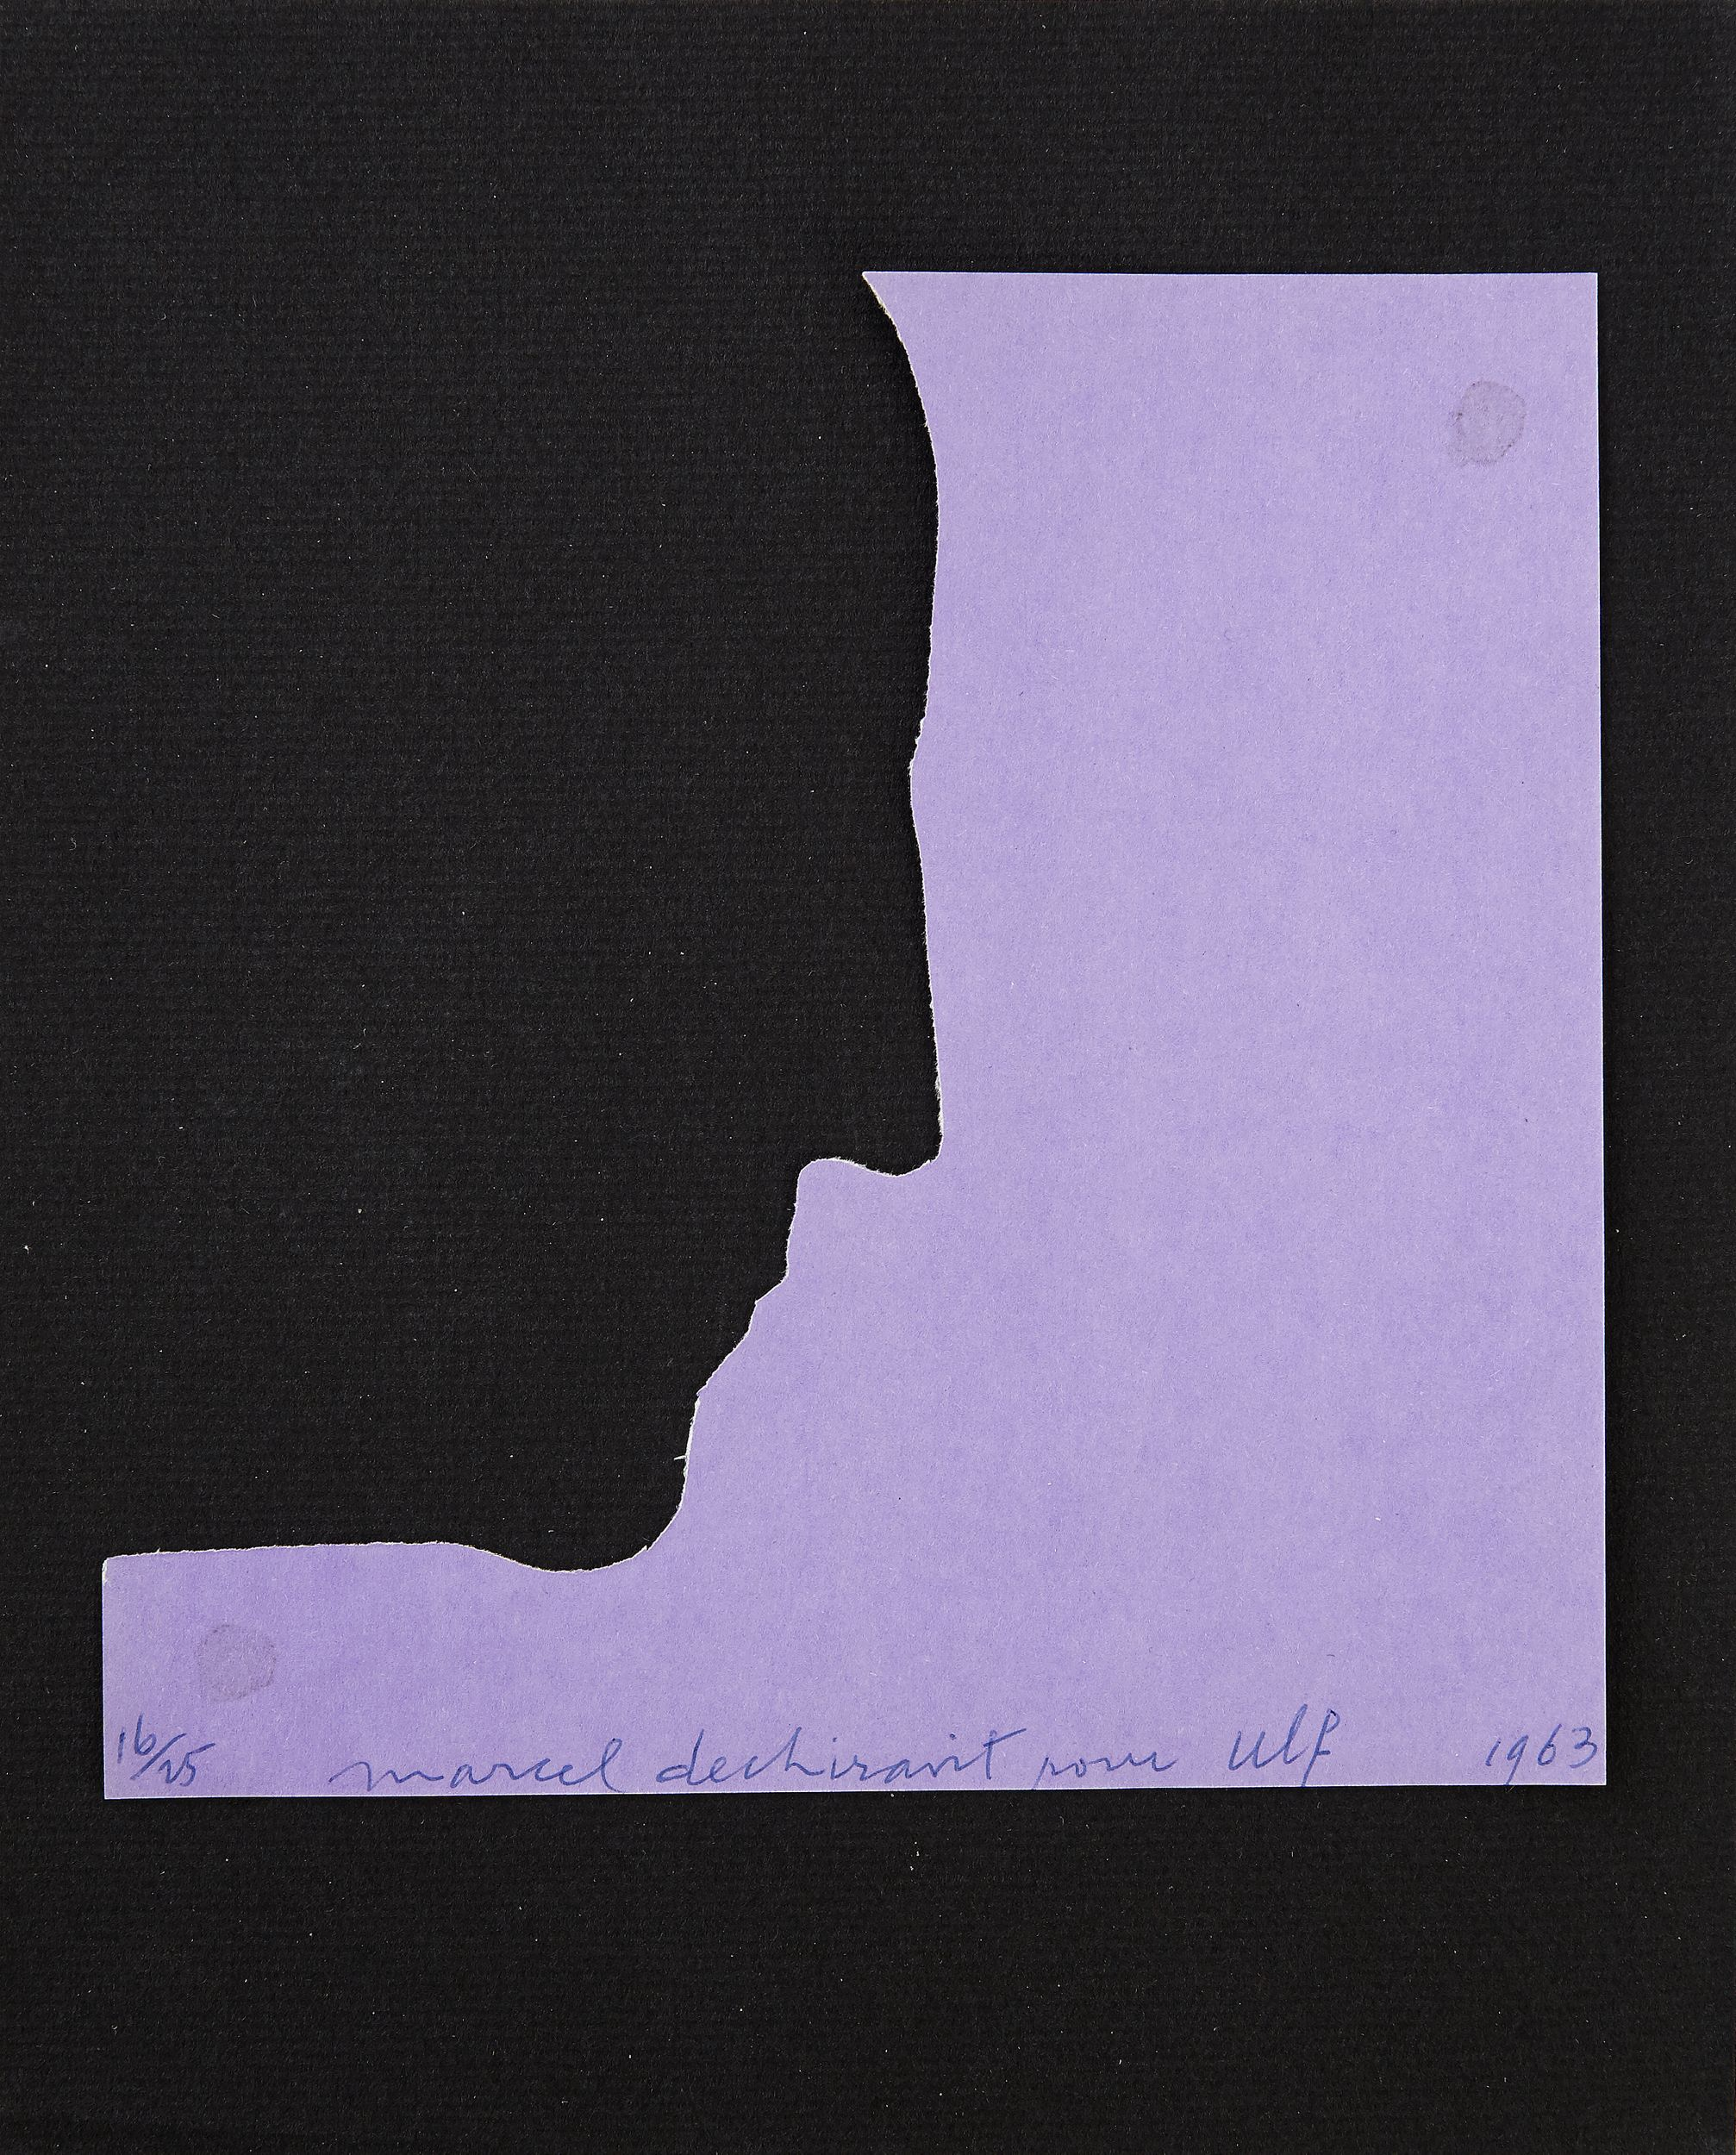 Marcel Duchamp, Self-Portrait in Profile